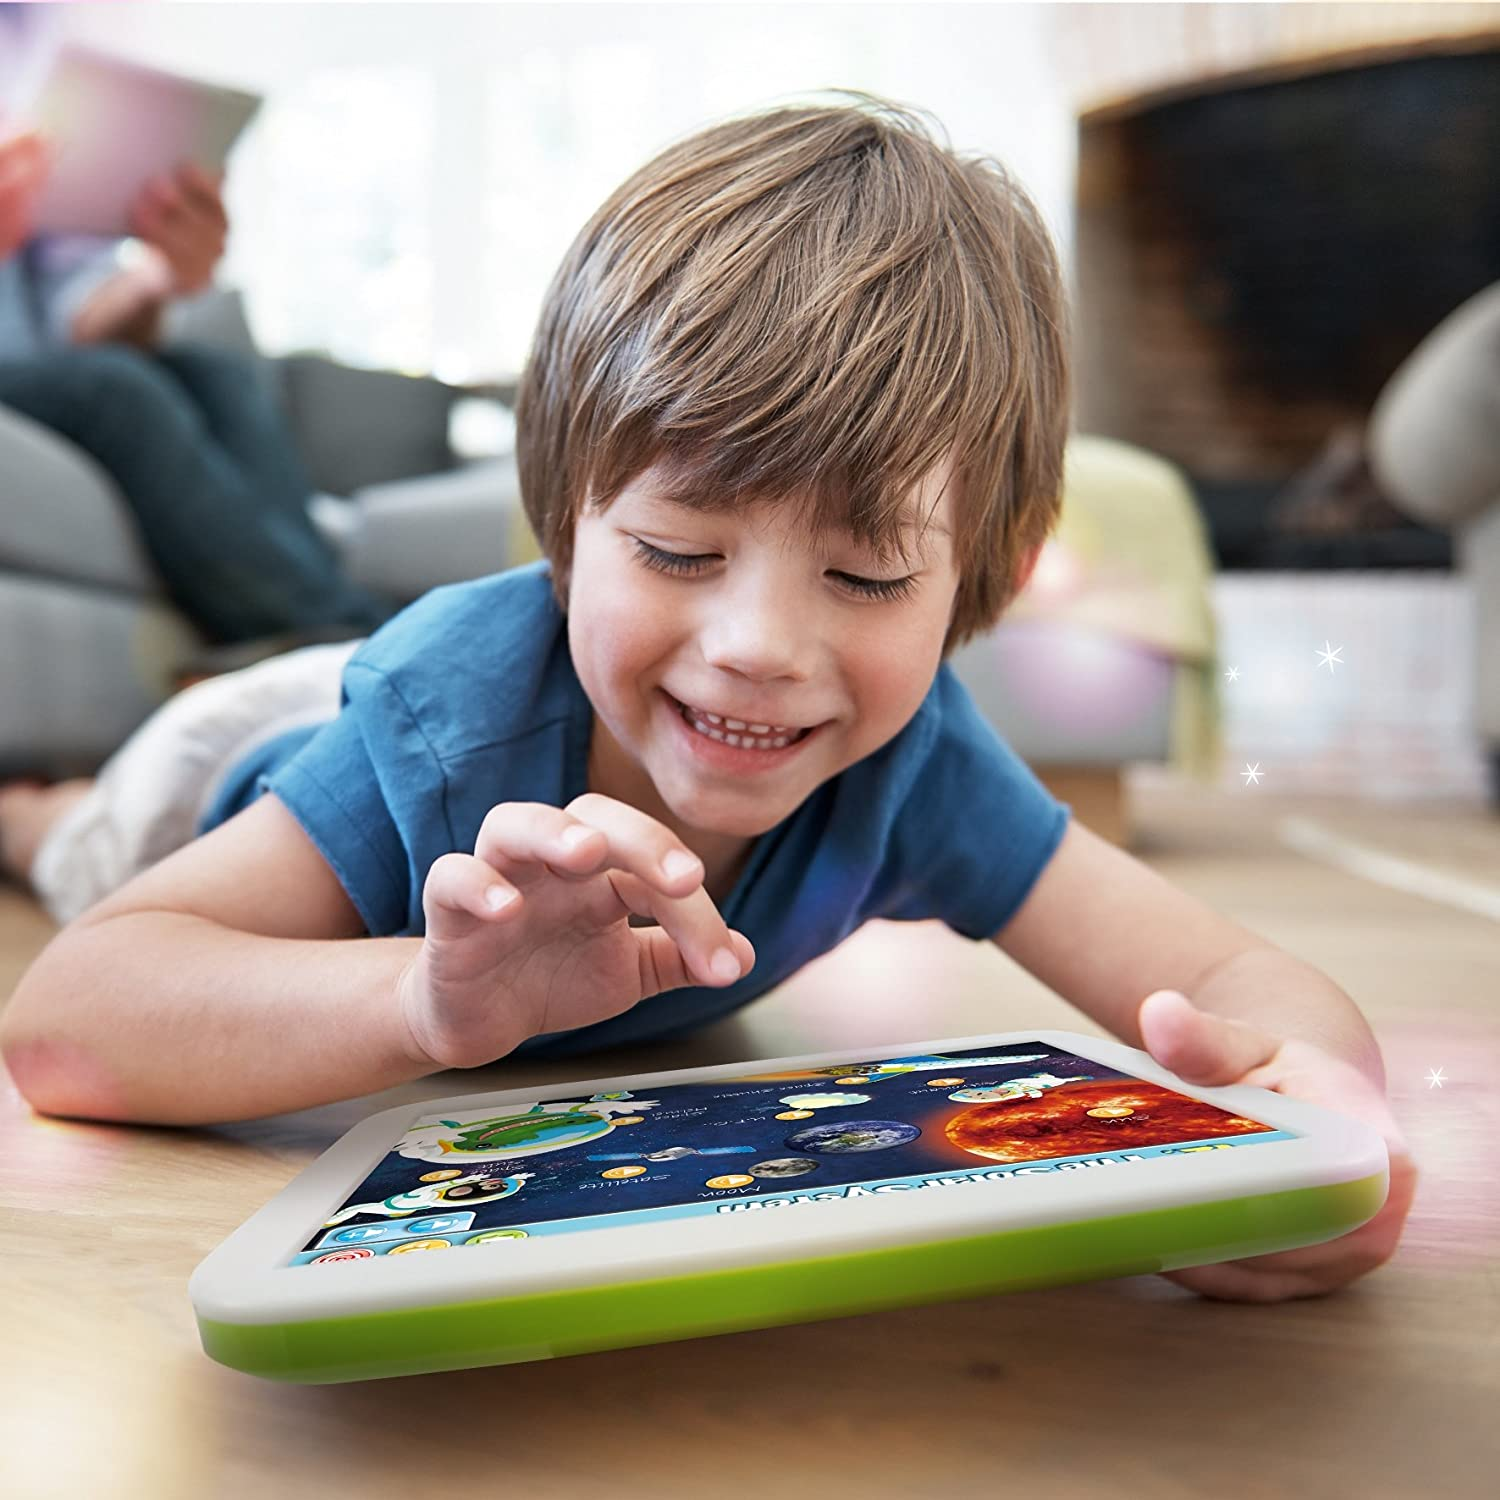 Best Learning Inno Pad My Fun Lessons Educational Tablet Toy To Snap Circuits Jr Select By Elenco Electronics Inc On Barstons Childs Learn Letters Numbers Colors Shapes Transportation Space For Toddlers Electronic